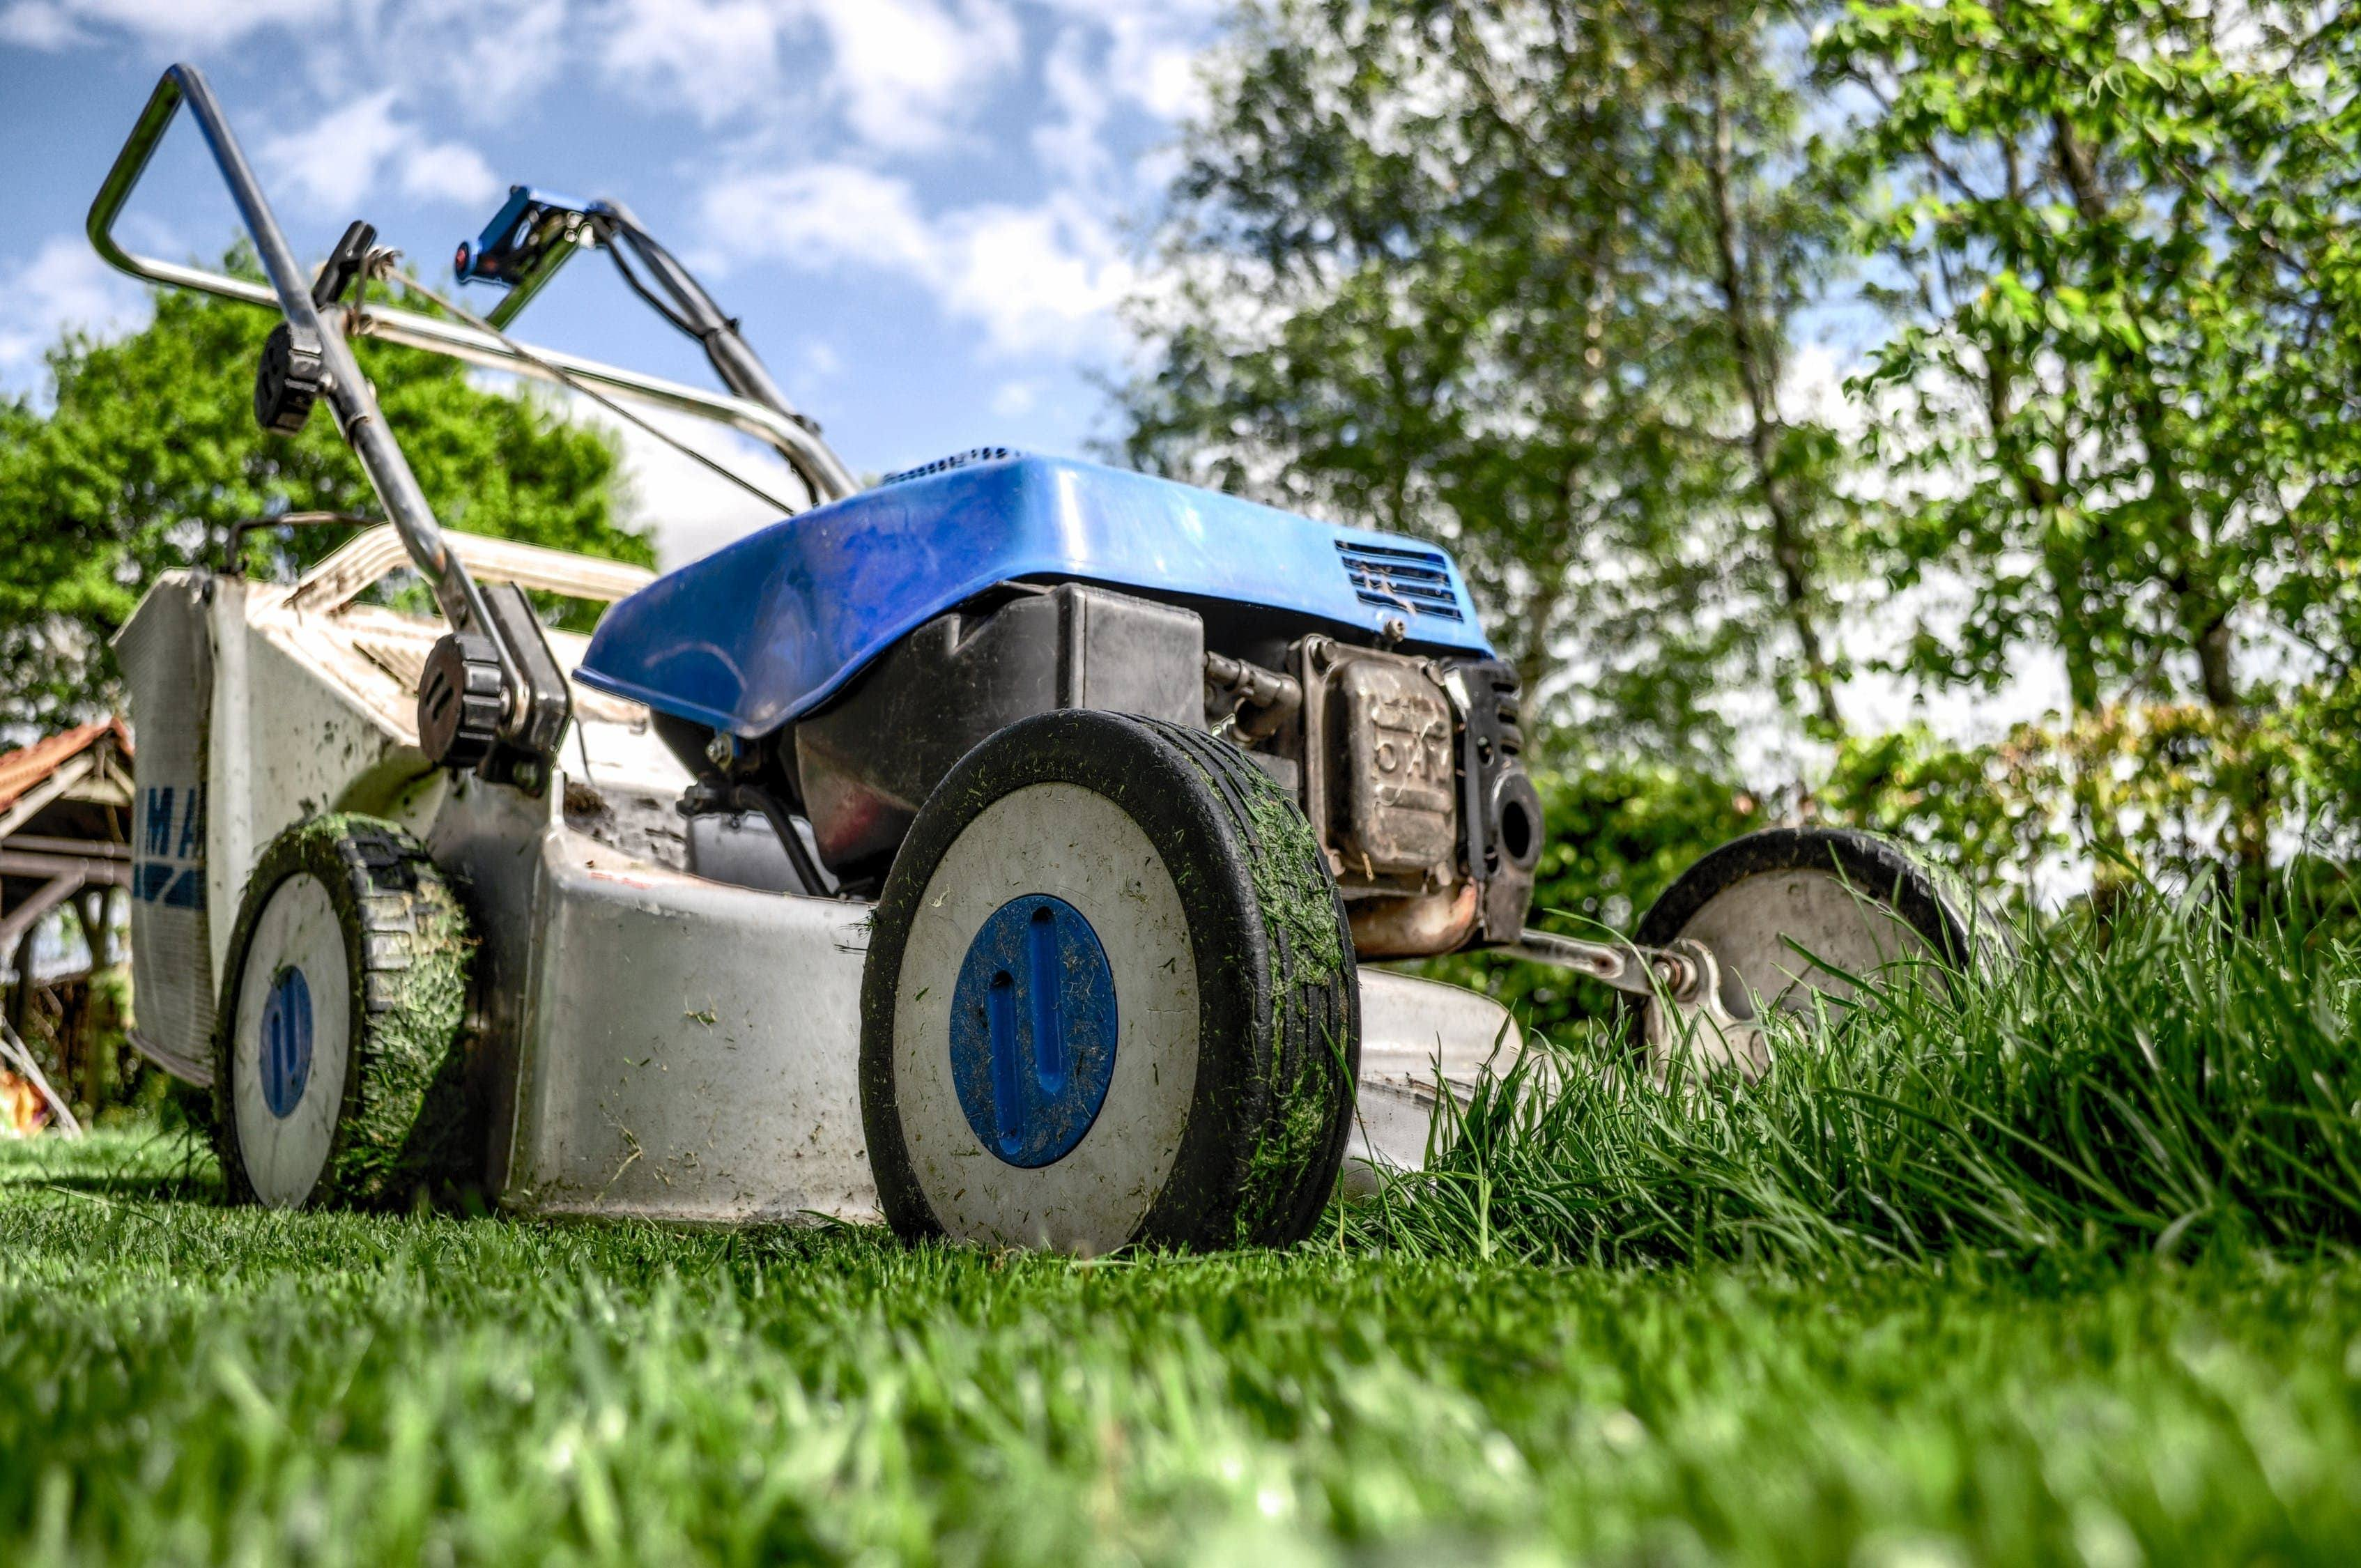 How Does a Lawn Mower Work?